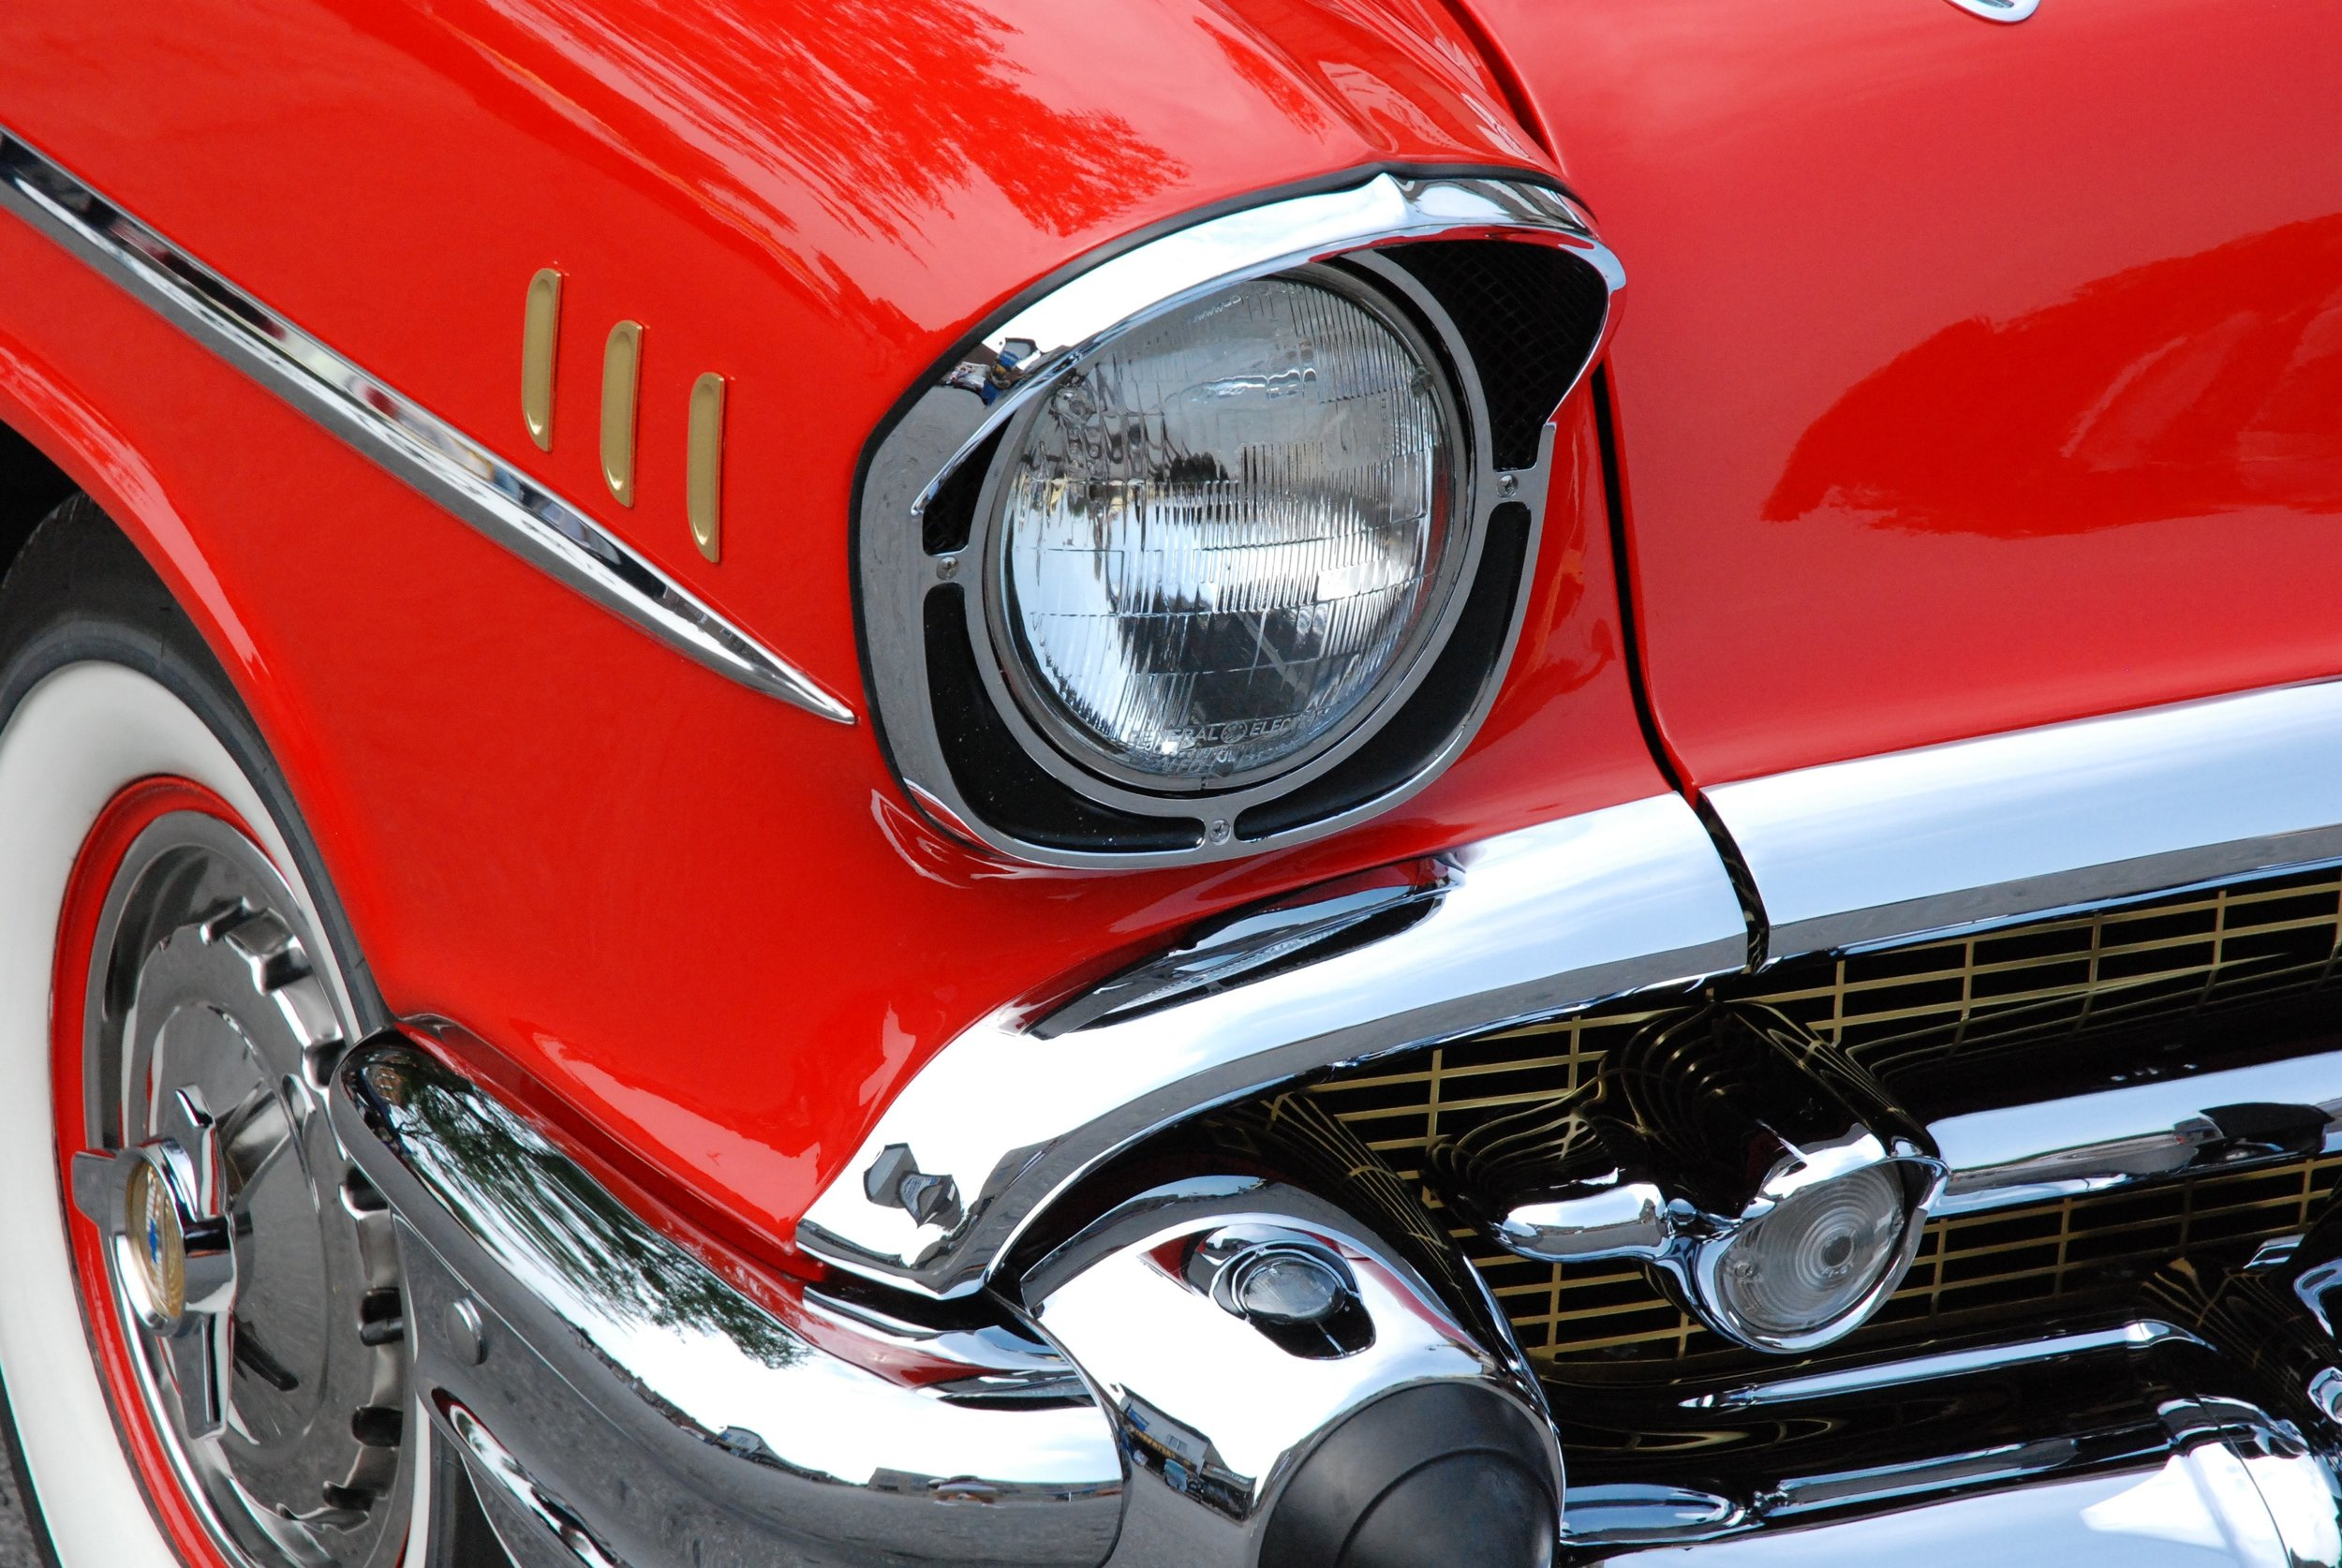 CLASSIC CARS - From frame-off restorations to touch ups and everything in between